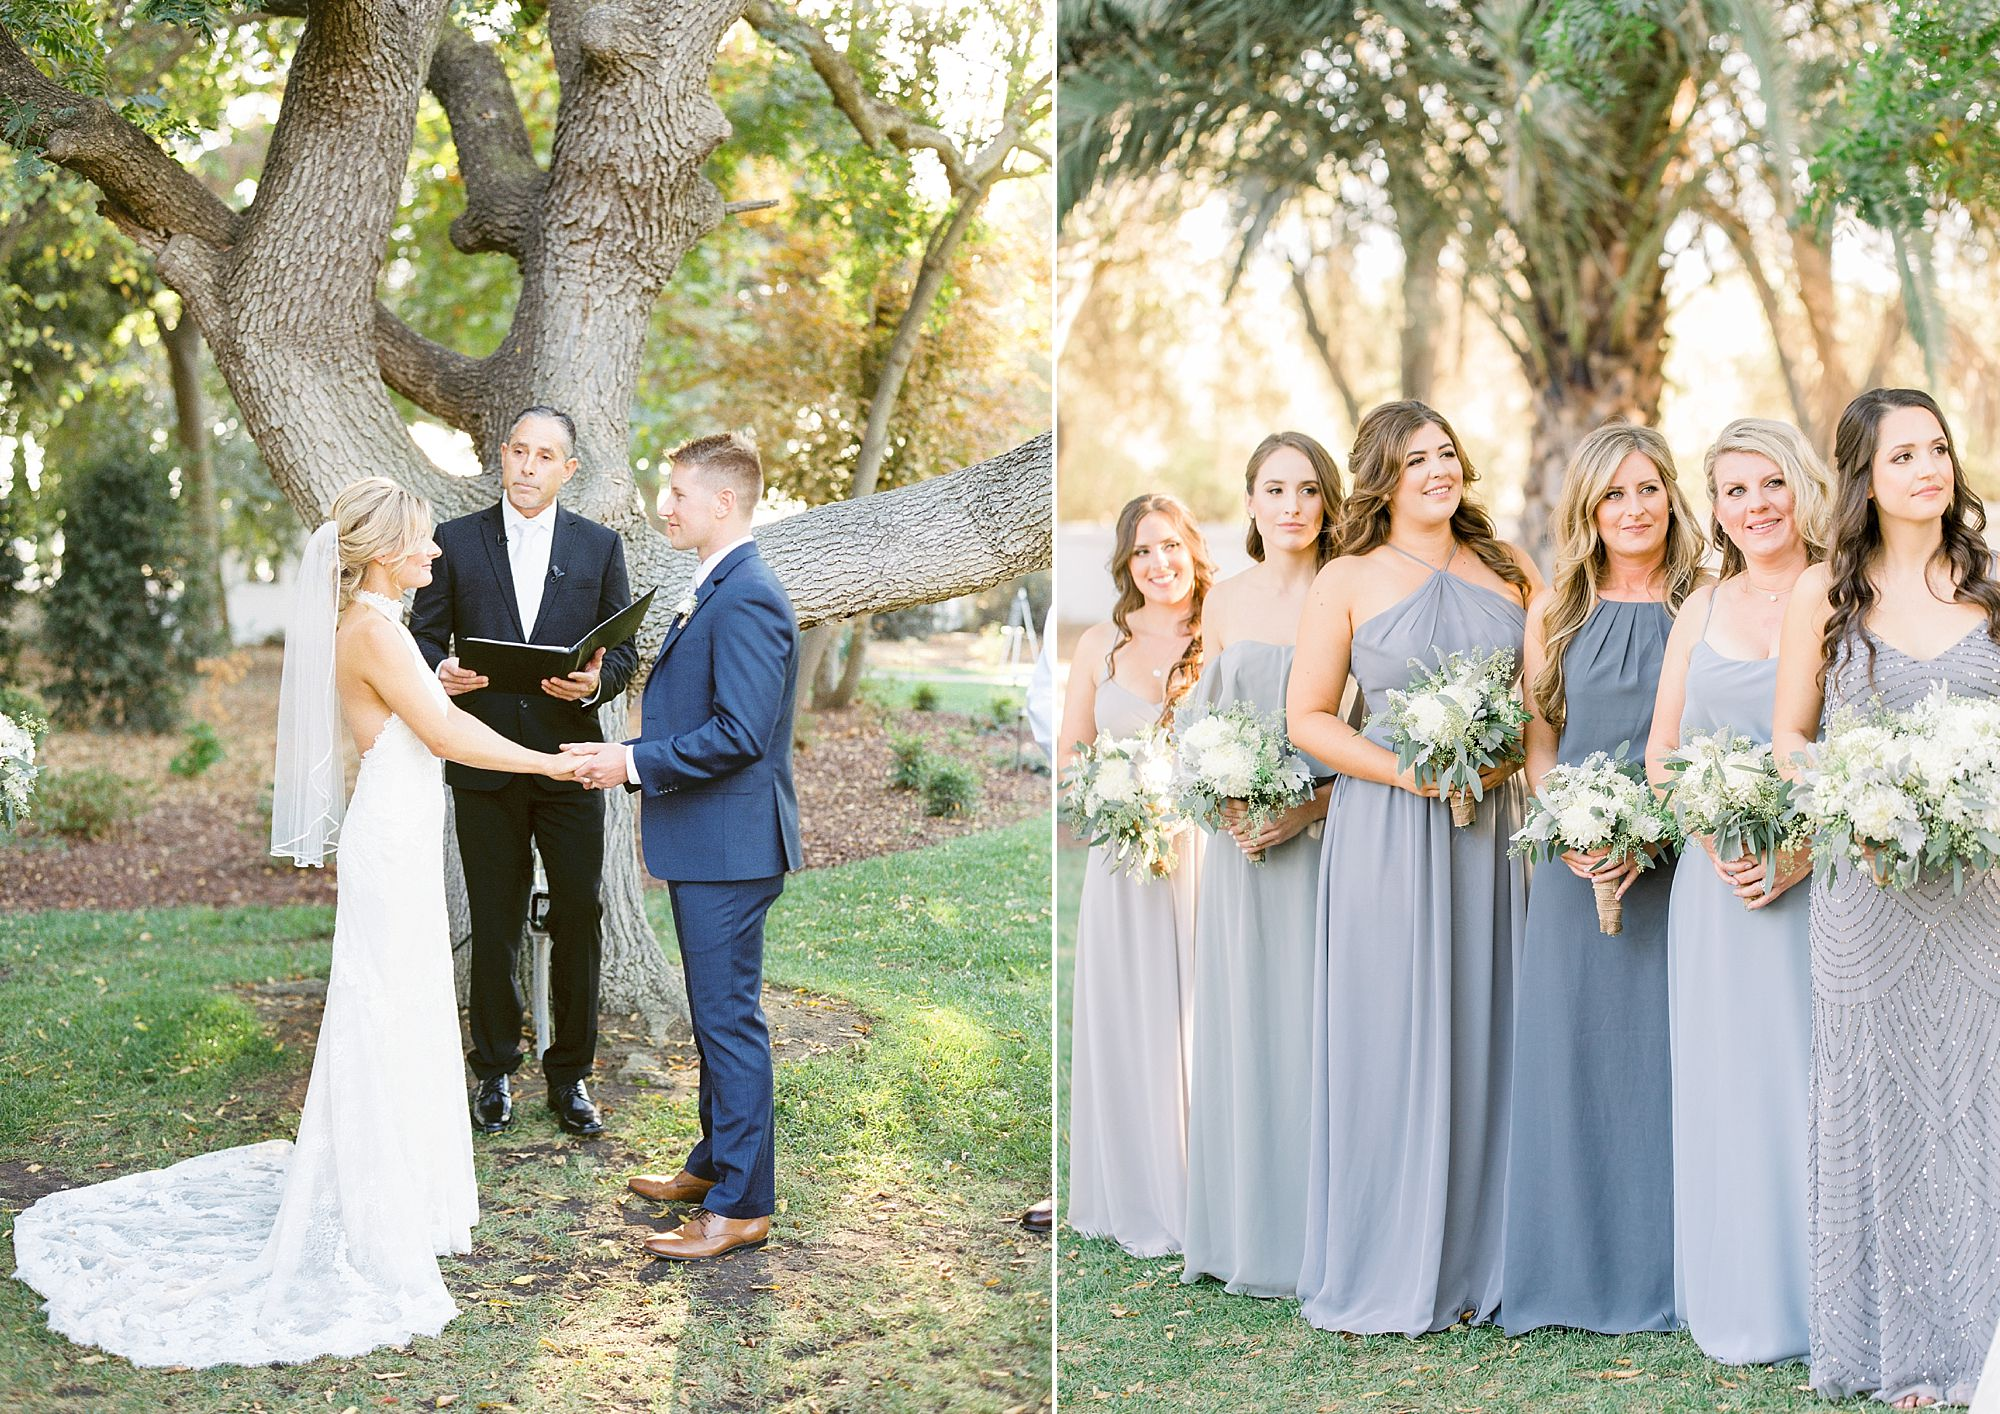 The Maples Wedding in Woodland California - Ashley Baumgartner - Sacramento Wedding Photographer - Sacramento Film Photographer_0038.jpg